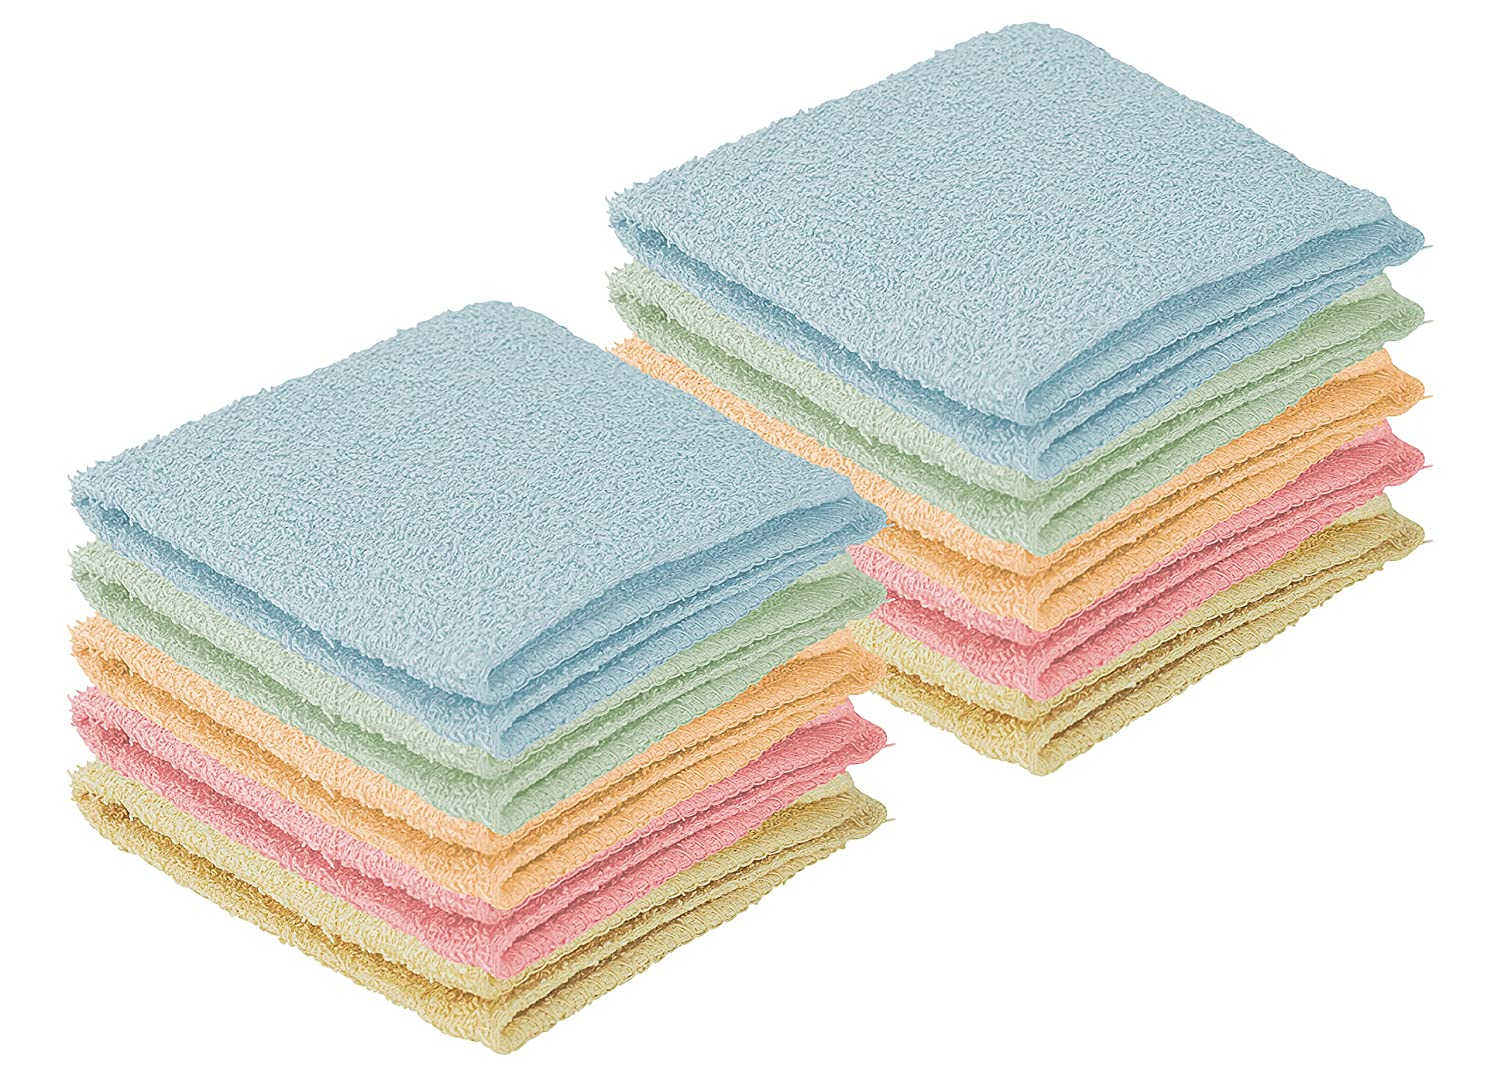 DecorRack 10 Pack 100% Cotton Wash Cloth, Luxurious Soft, 12 x 12 inch Ultra Absorbent, Machine Washable Washcloths, Assorted Colors (10 Pack)